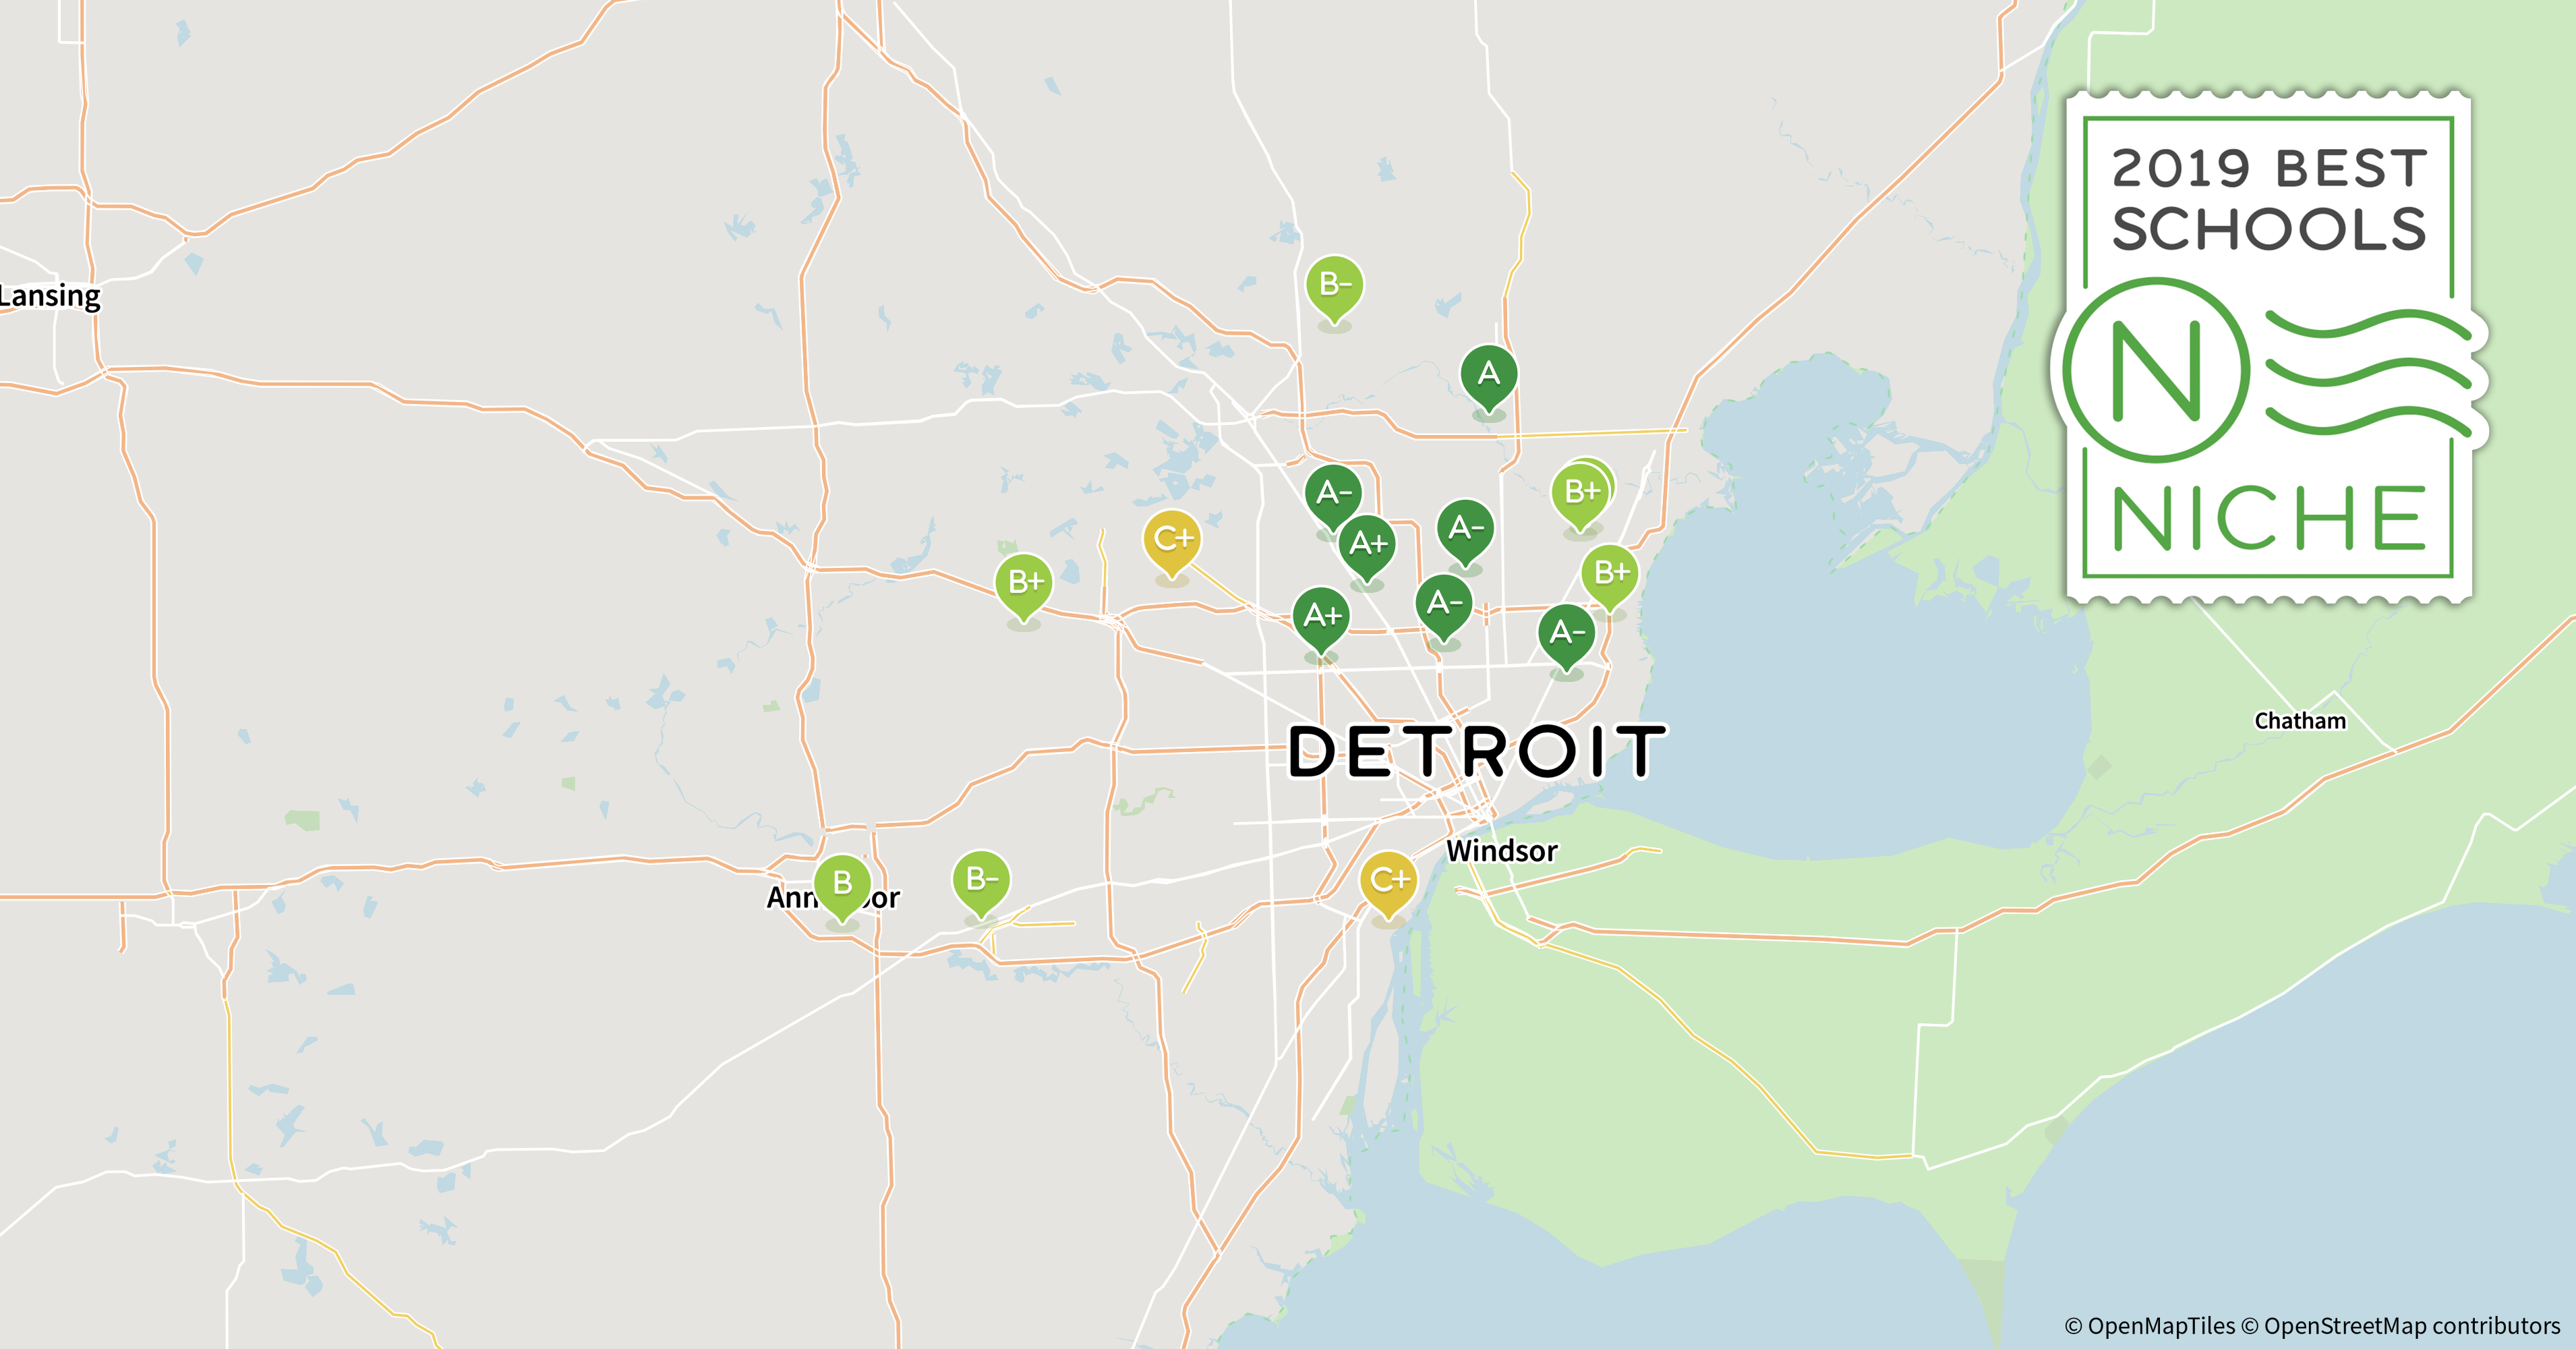 2019 Best School Districts in the Detroit Area - Niche